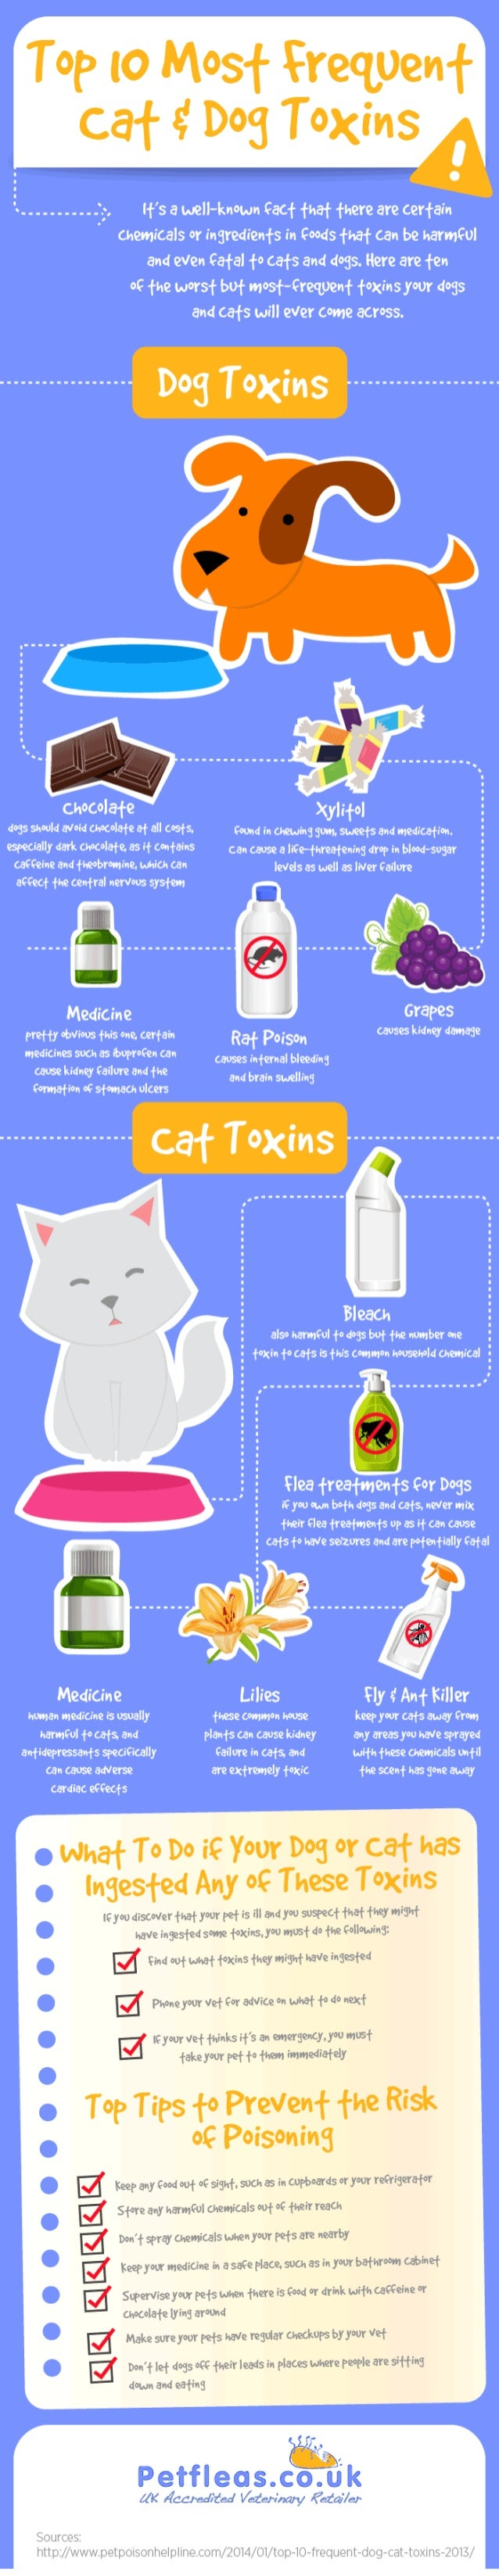 Top 10 Most Frequent Cat and Dog Toxins